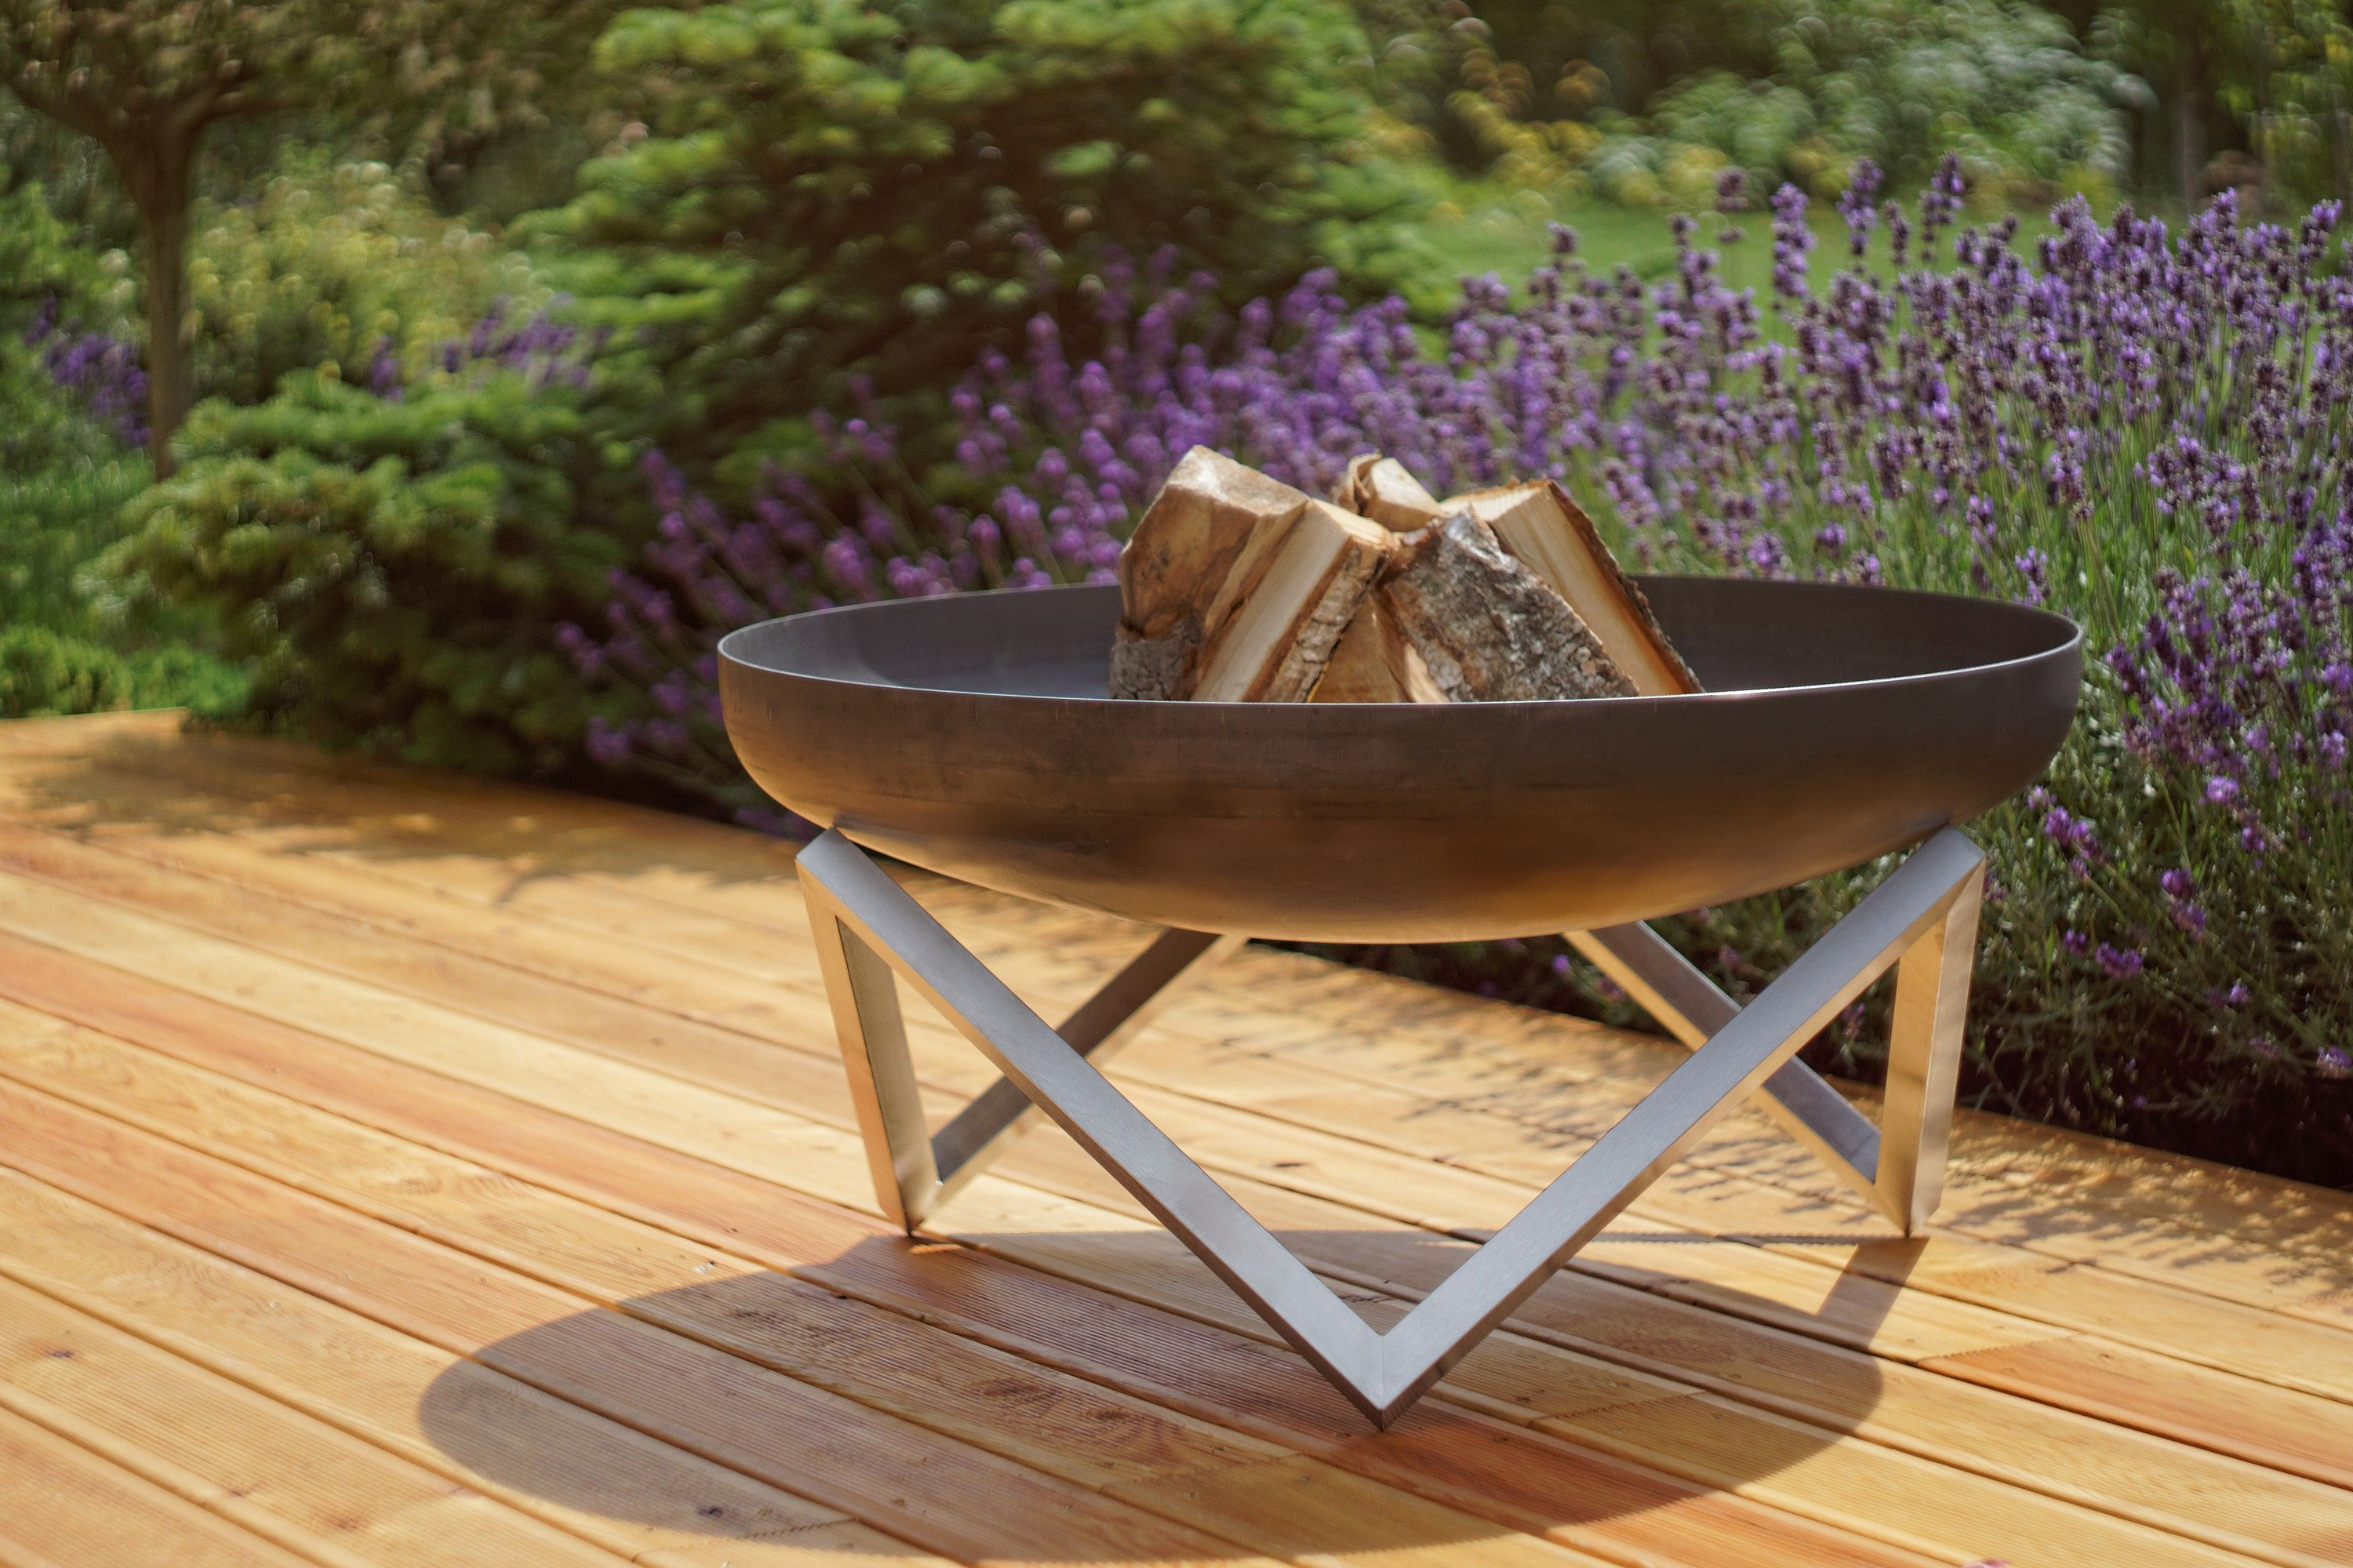 Buy Hand Crafted Modern Outdoor Patio Rust Stainless Steel Fire Pit Memel Large Made To Order From Curonian Deco Custommade Com